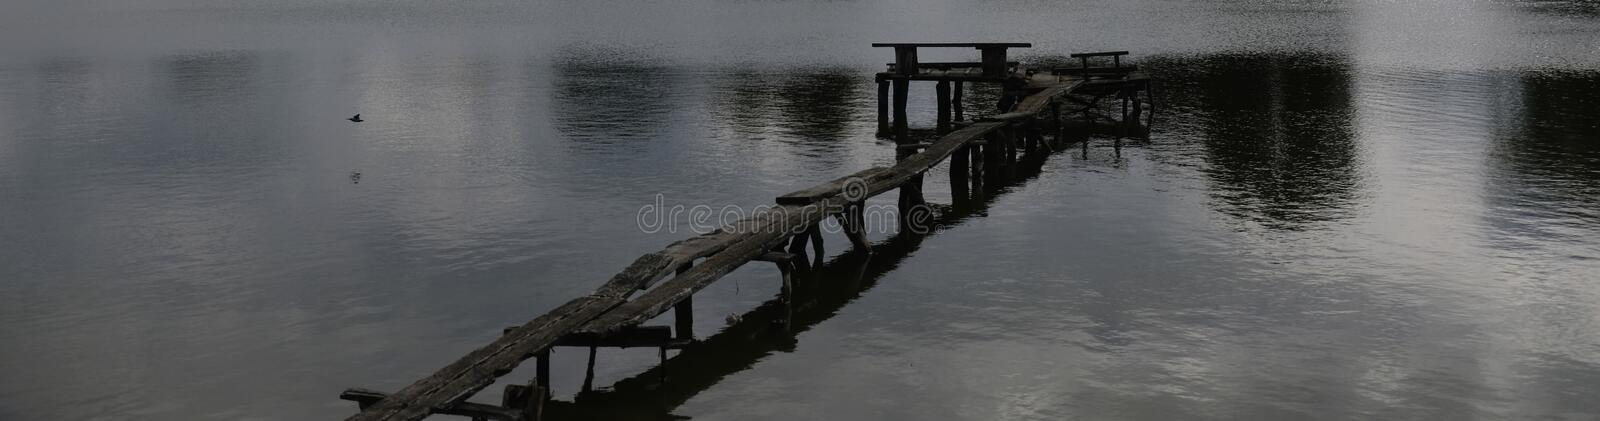 Old wooden pier over the lake.  royalty free stock photography